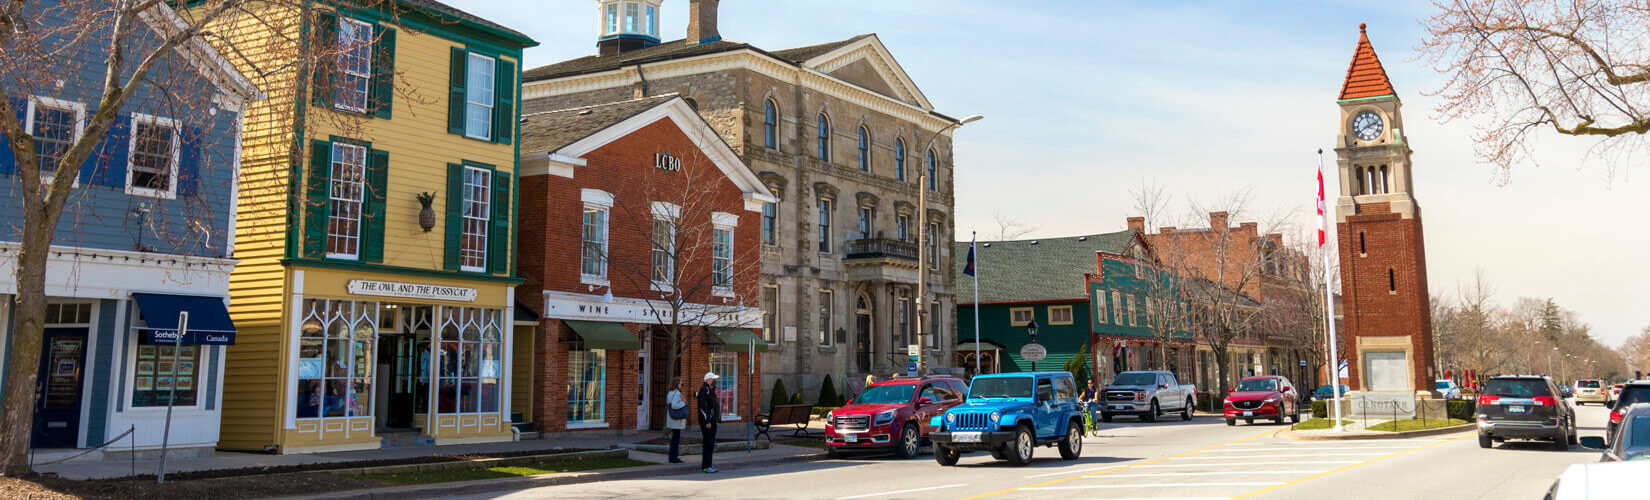 30+ Charming Things to Do in Niagara-on-the-Lake From a Local :: I've Been Bit! Travel Blog